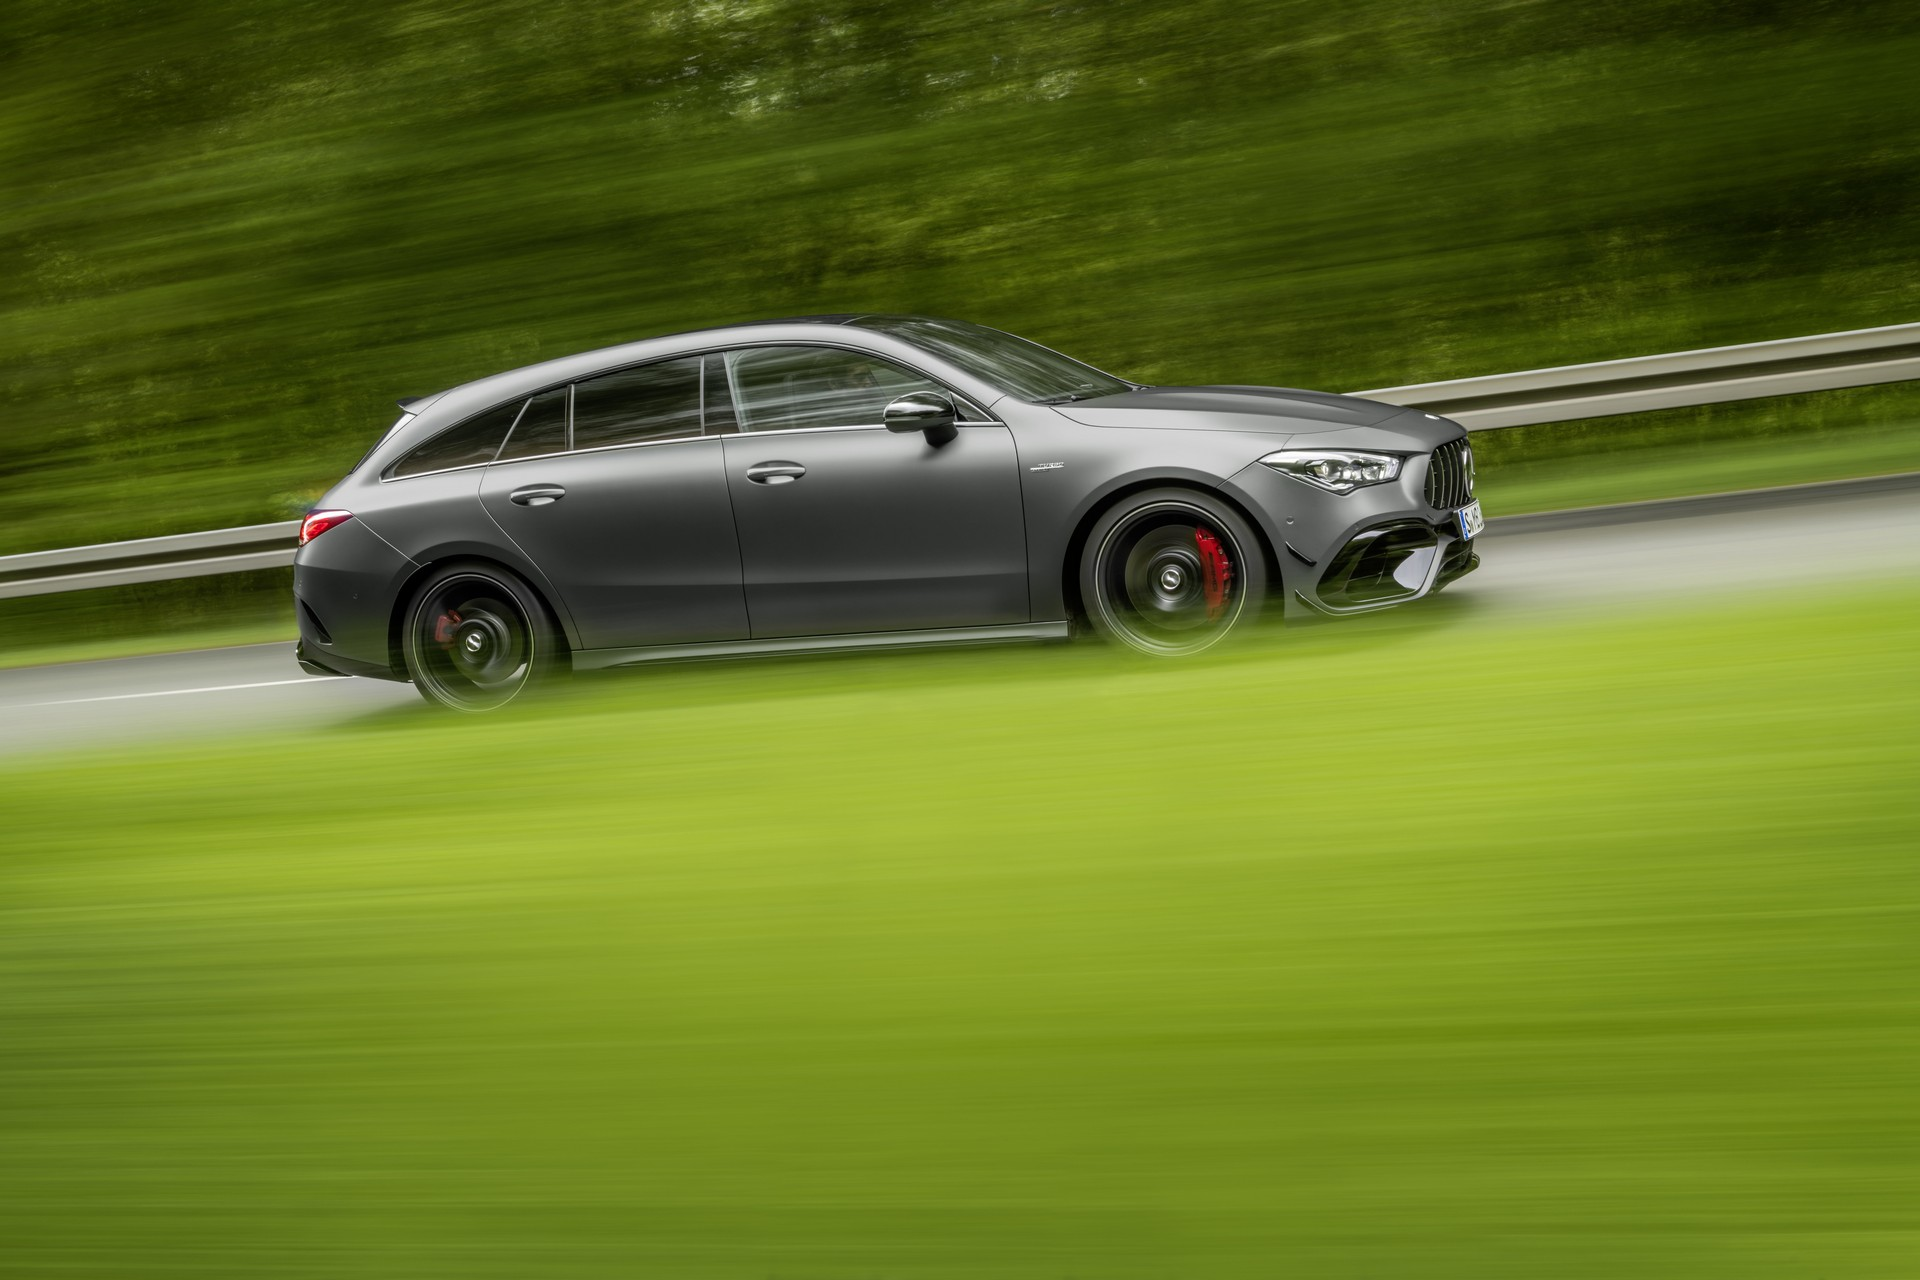 Mercedes-AMG CLA 45 4MATIC+ Shooting Brake (23)